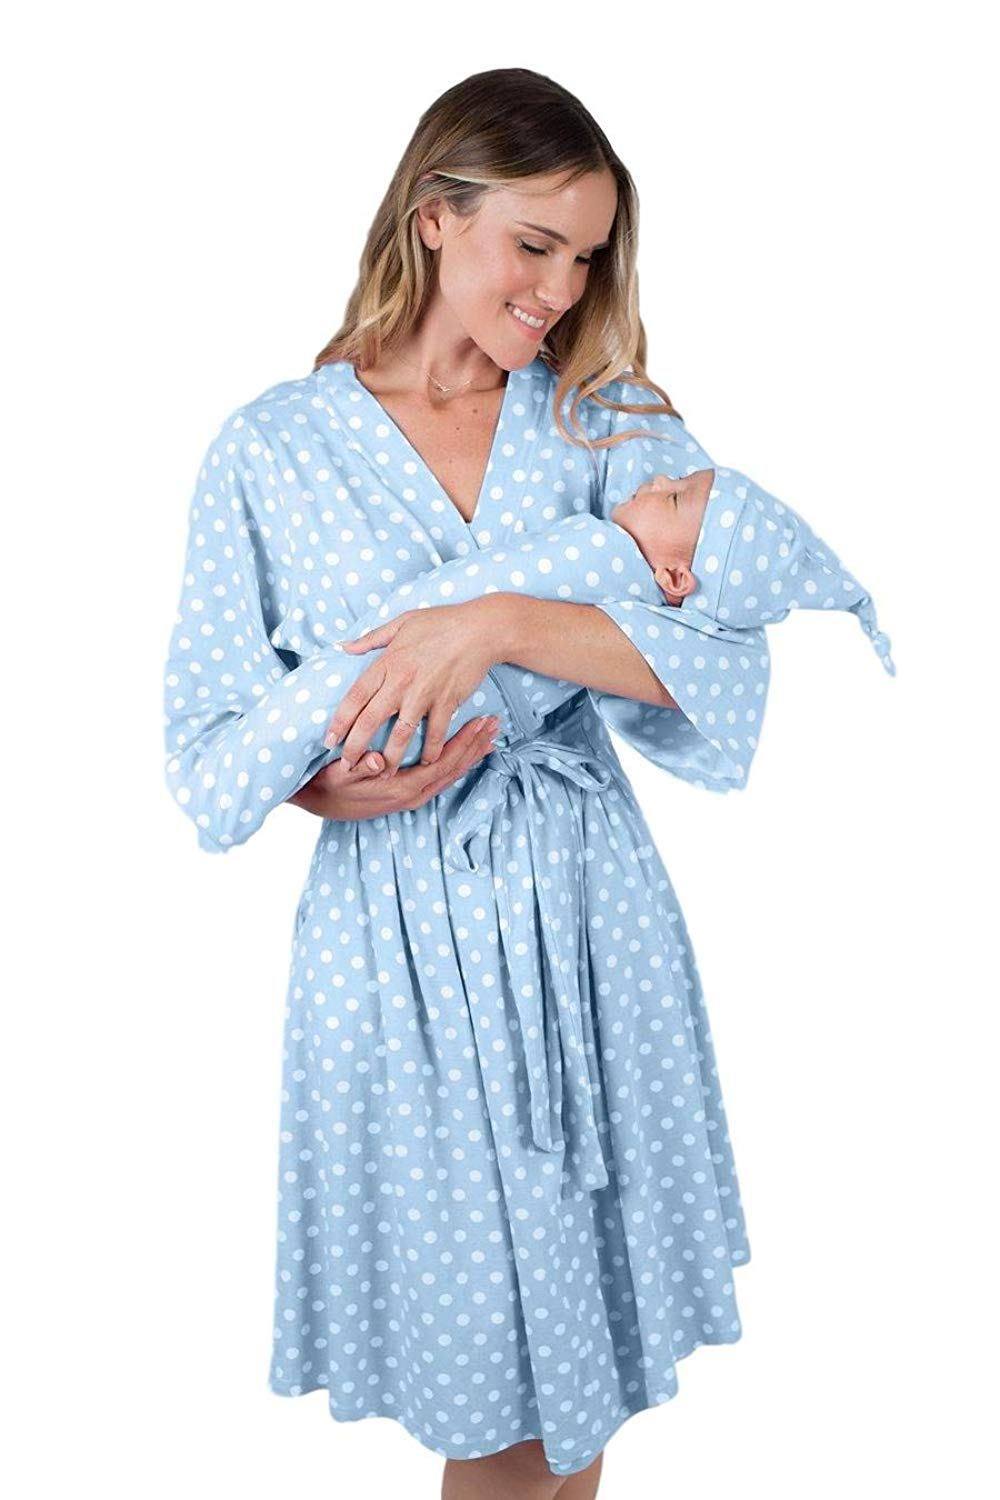 faaca91853a2b Get Quotations · Matching Maternity/Delivery Robe Baby Swaddle Set, Mom Baby